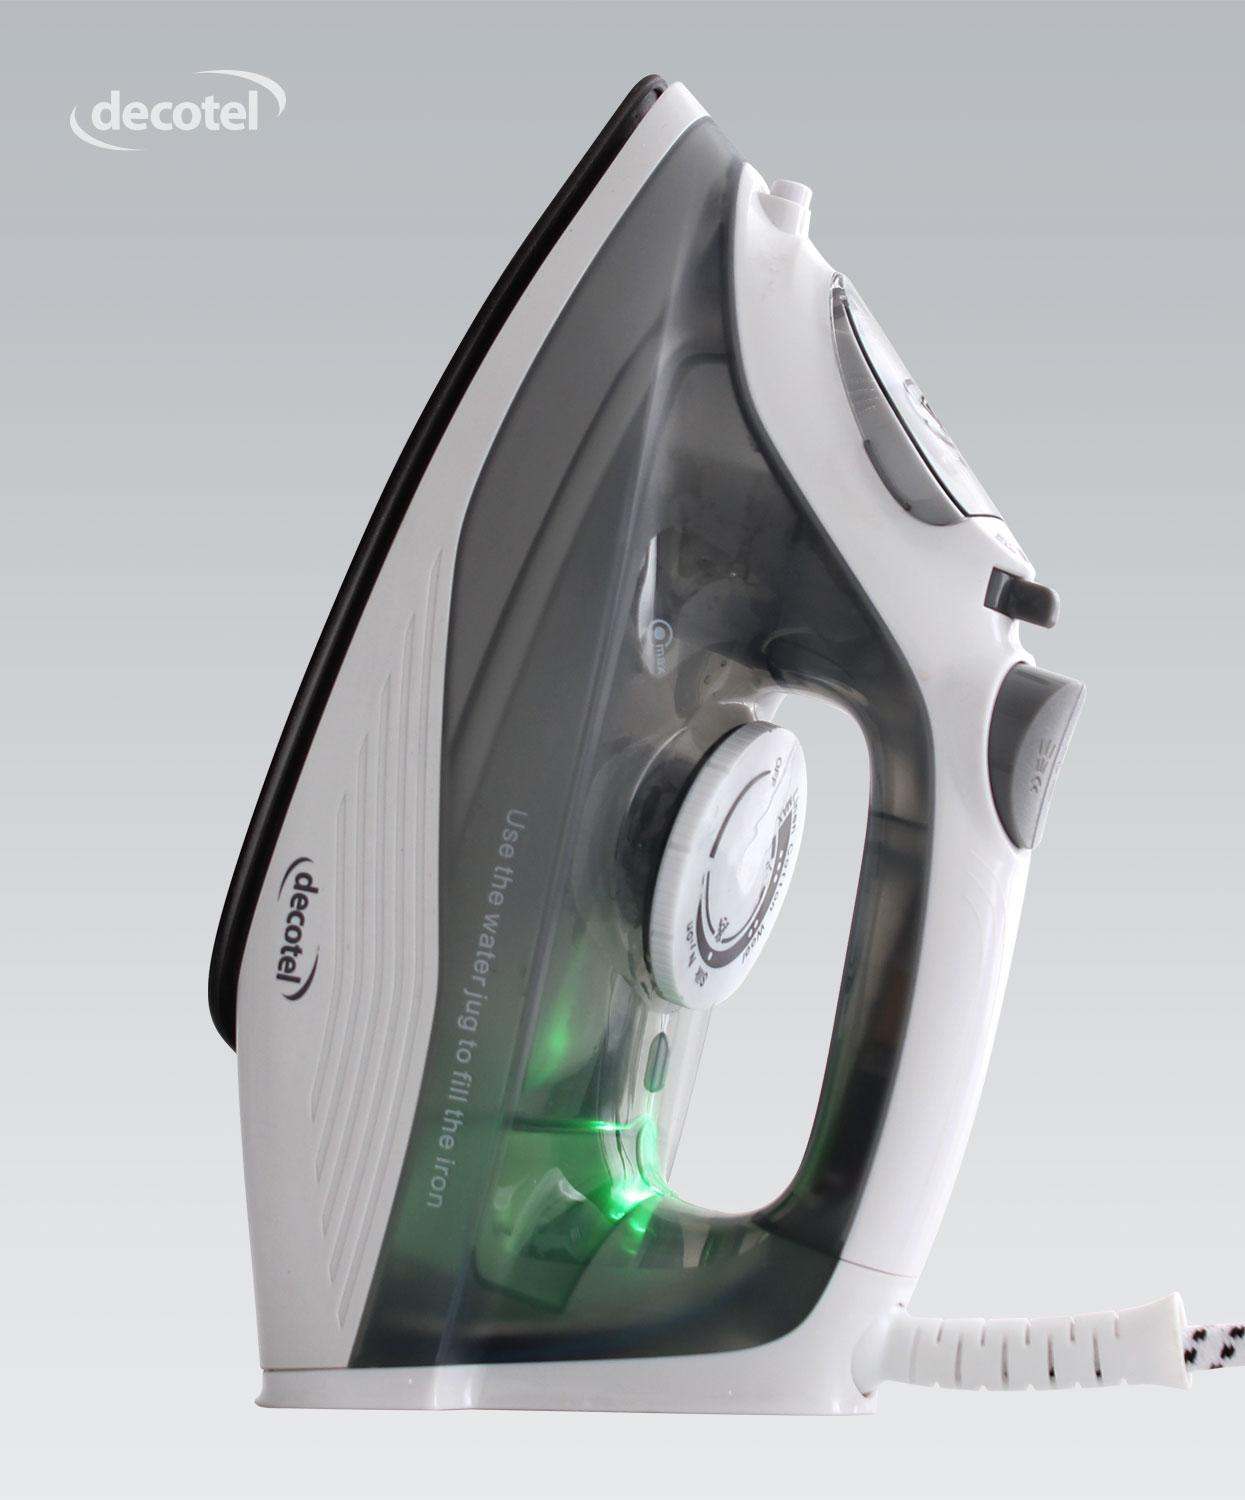 Decotel Steam Iron for hotels